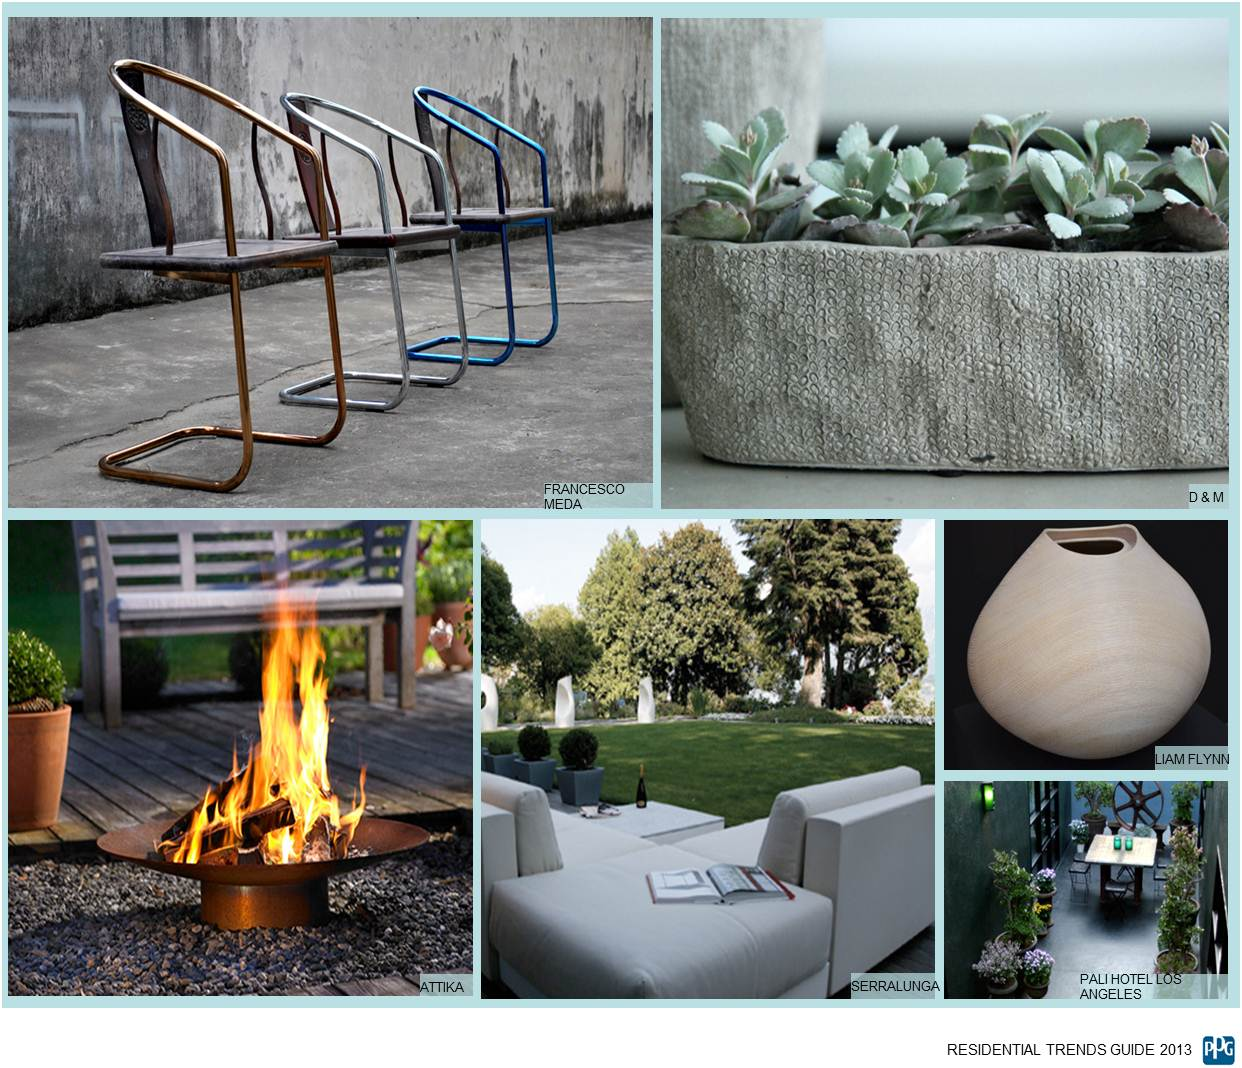 discreet luxury outdoor elements